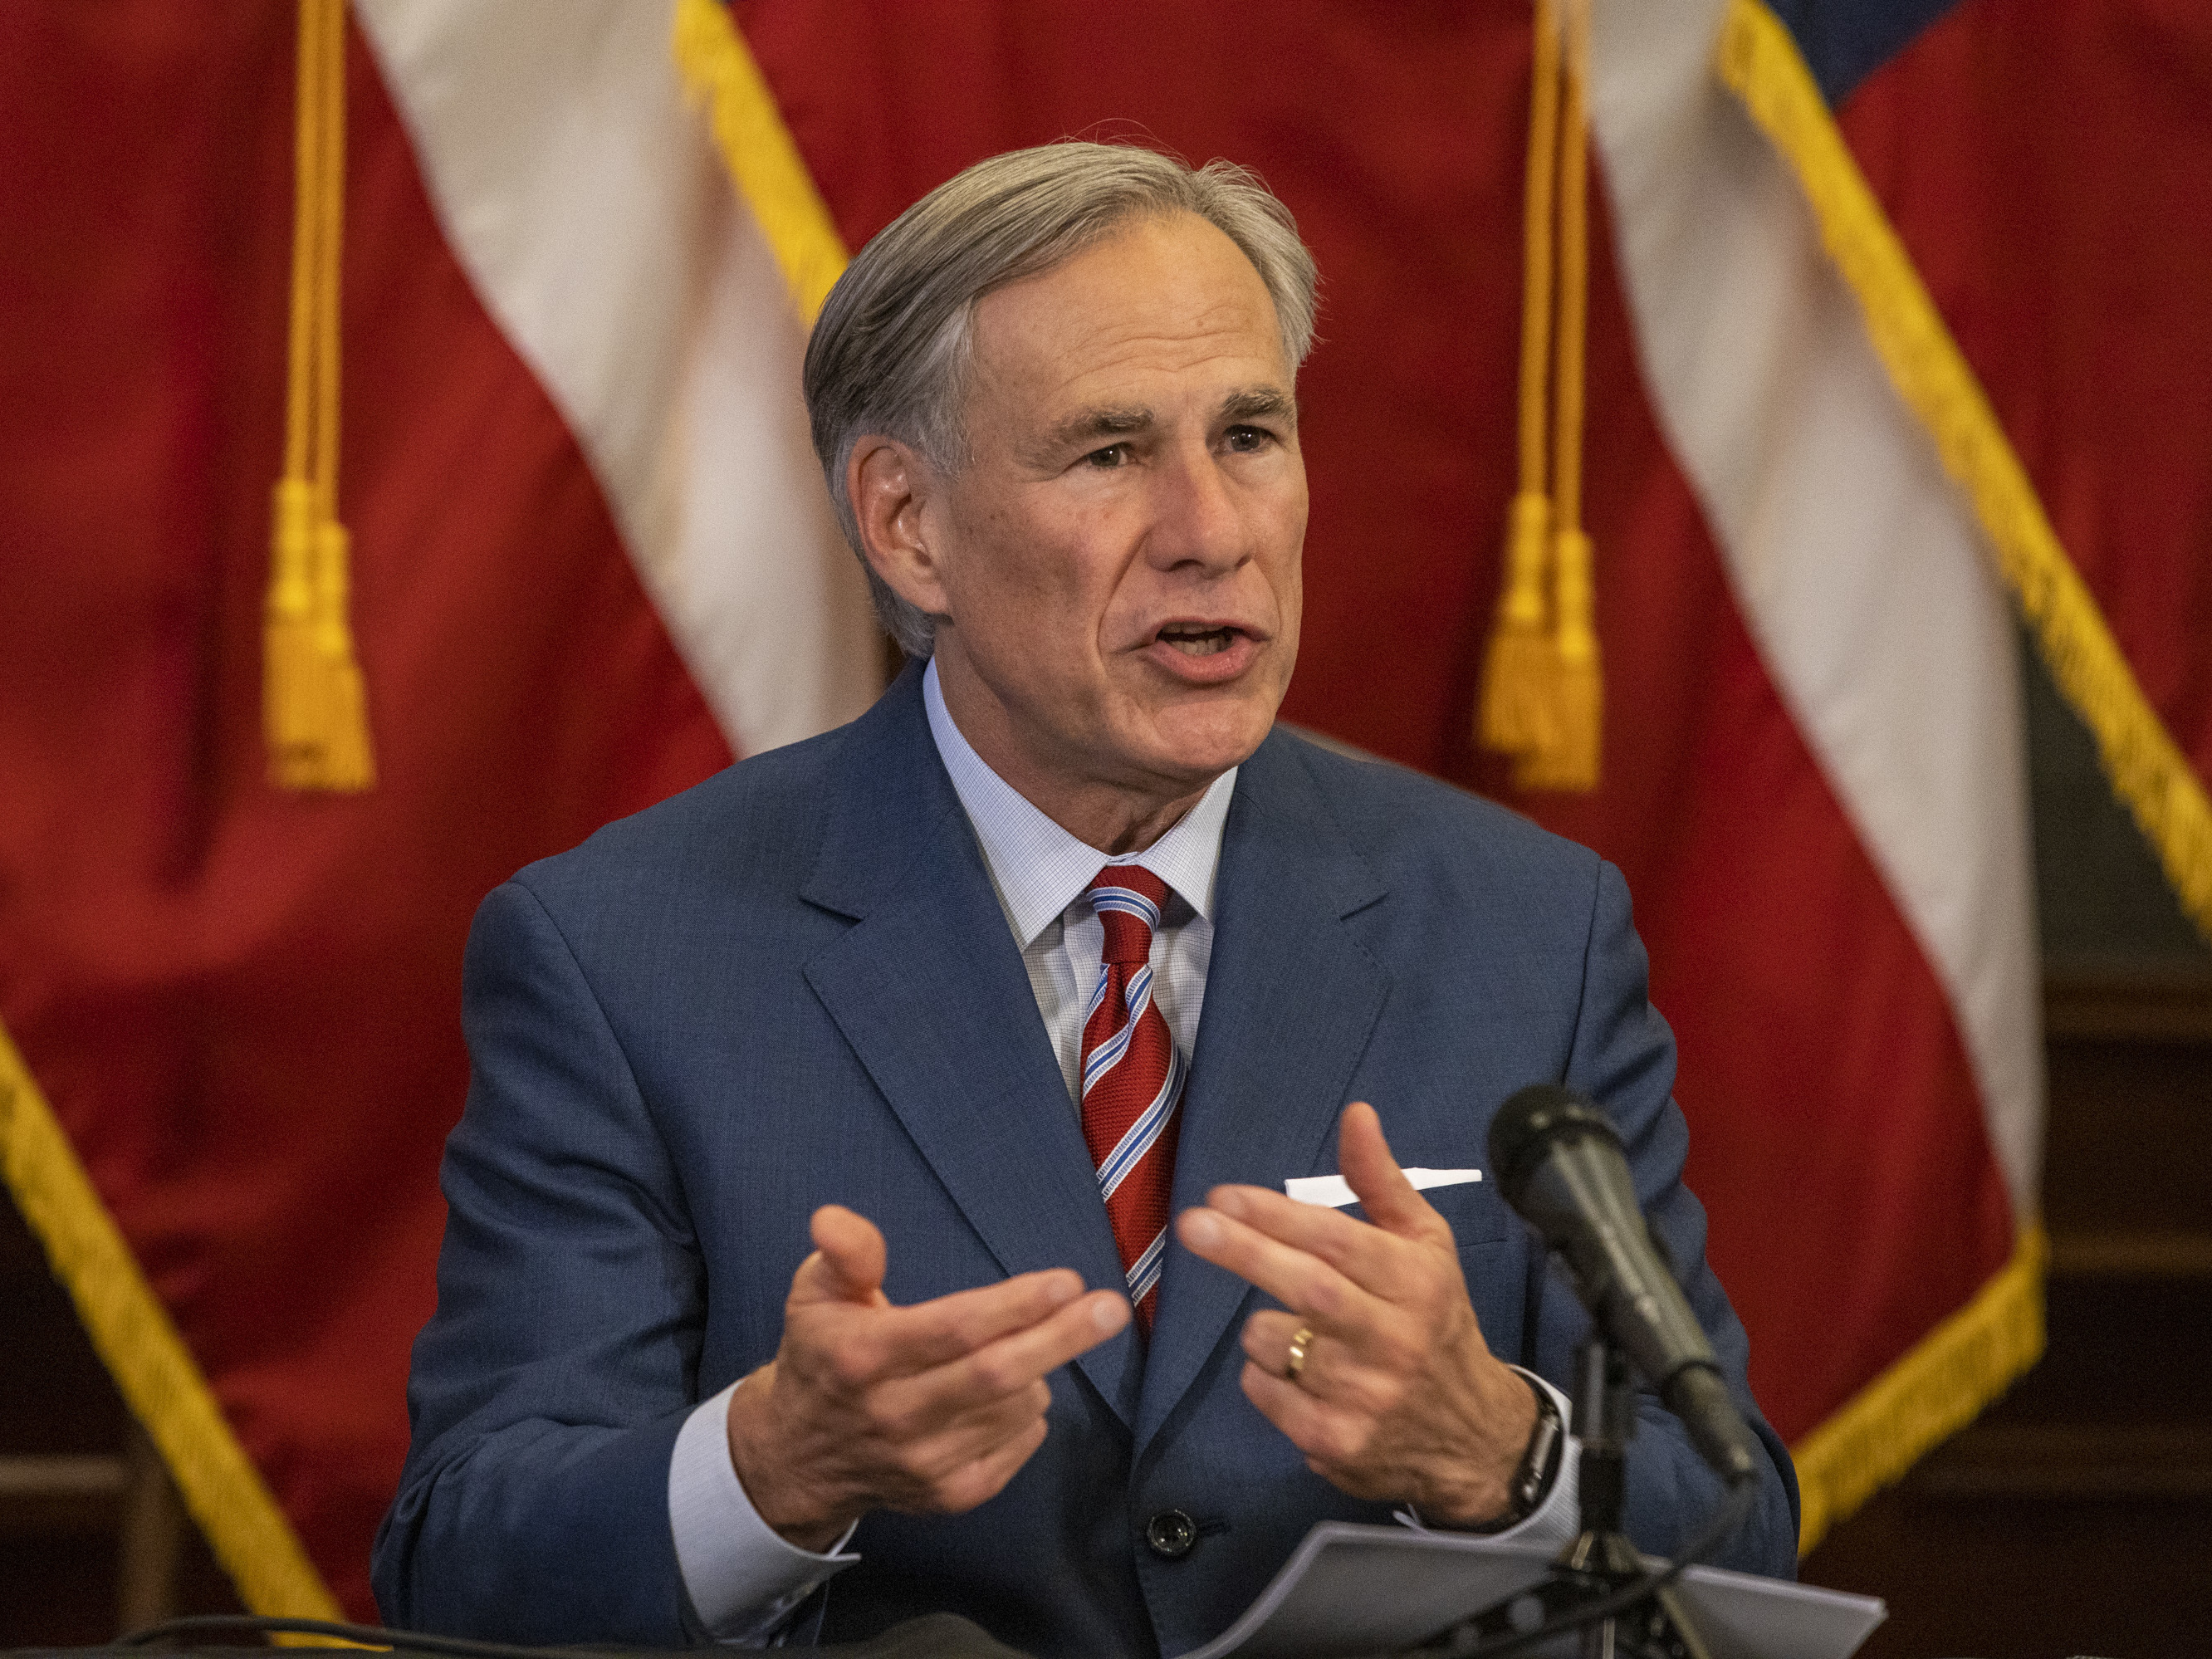 Texas Gov. Greg Abbott Halts Coronavirus Reopening As Cases Rise